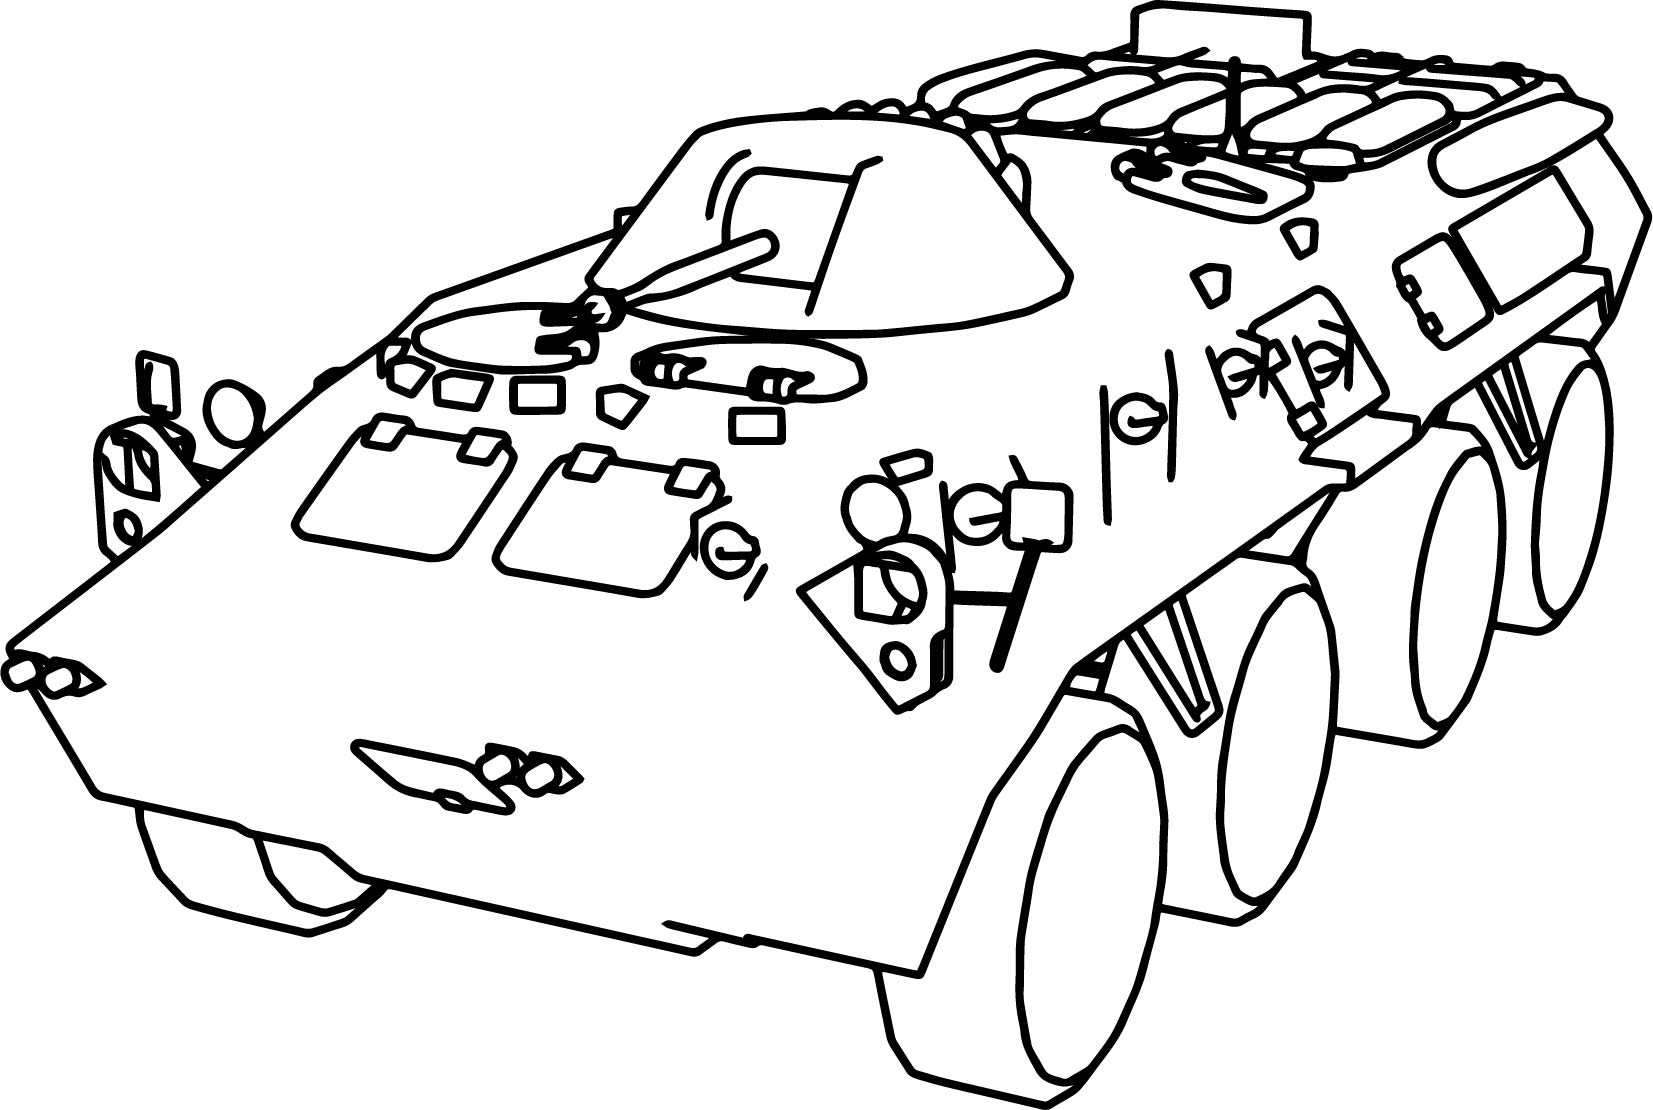 btr 80 military truck coloring page. Black Bedroom Furniture Sets. Home Design Ideas